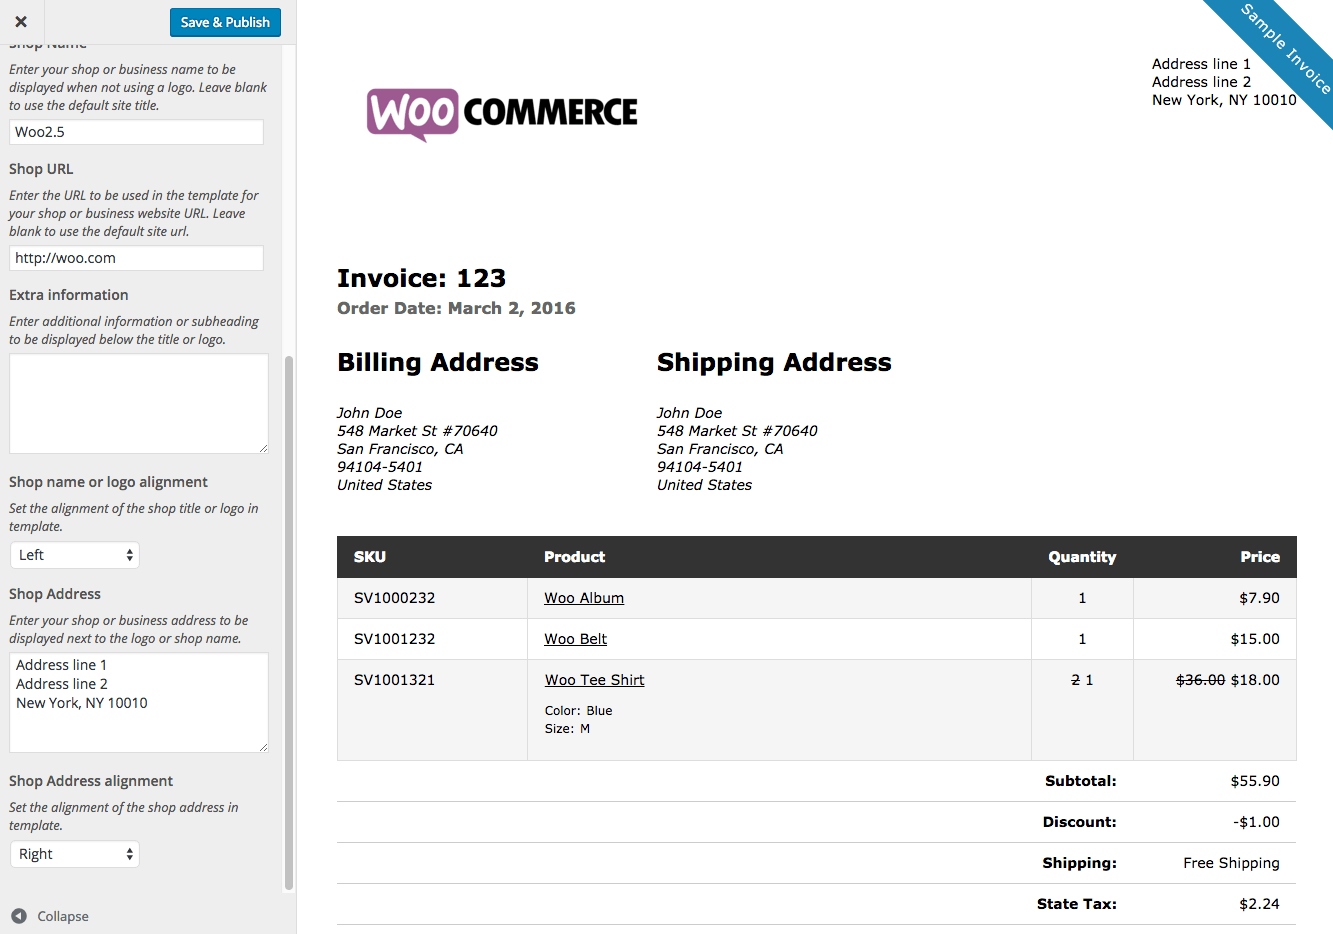 Weirdmailus  Stunning Woocommerce Print Invoices Amp Packing Lists  Woocommerce Docs With Lovely Woocommerce Print Invoices  Packing Lists Customizer With Extraordinary Toyota Dealer Invoice Also What Does Dealer Invoice Price Mean In Addition Invoice Business And Bmw X Invoice Price As Well As Detailed Invoice Template Additionally Invoice Tax From Docswoocommercecom With Weirdmailus  Lovely Woocommerce Print Invoices Amp Packing Lists  Woocommerce Docs With Extraordinary Woocommerce Print Invoices  Packing Lists Customizer And Stunning Toyota Dealer Invoice Also What Does Dealer Invoice Price Mean In Addition Invoice Business From Docswoocommercecom